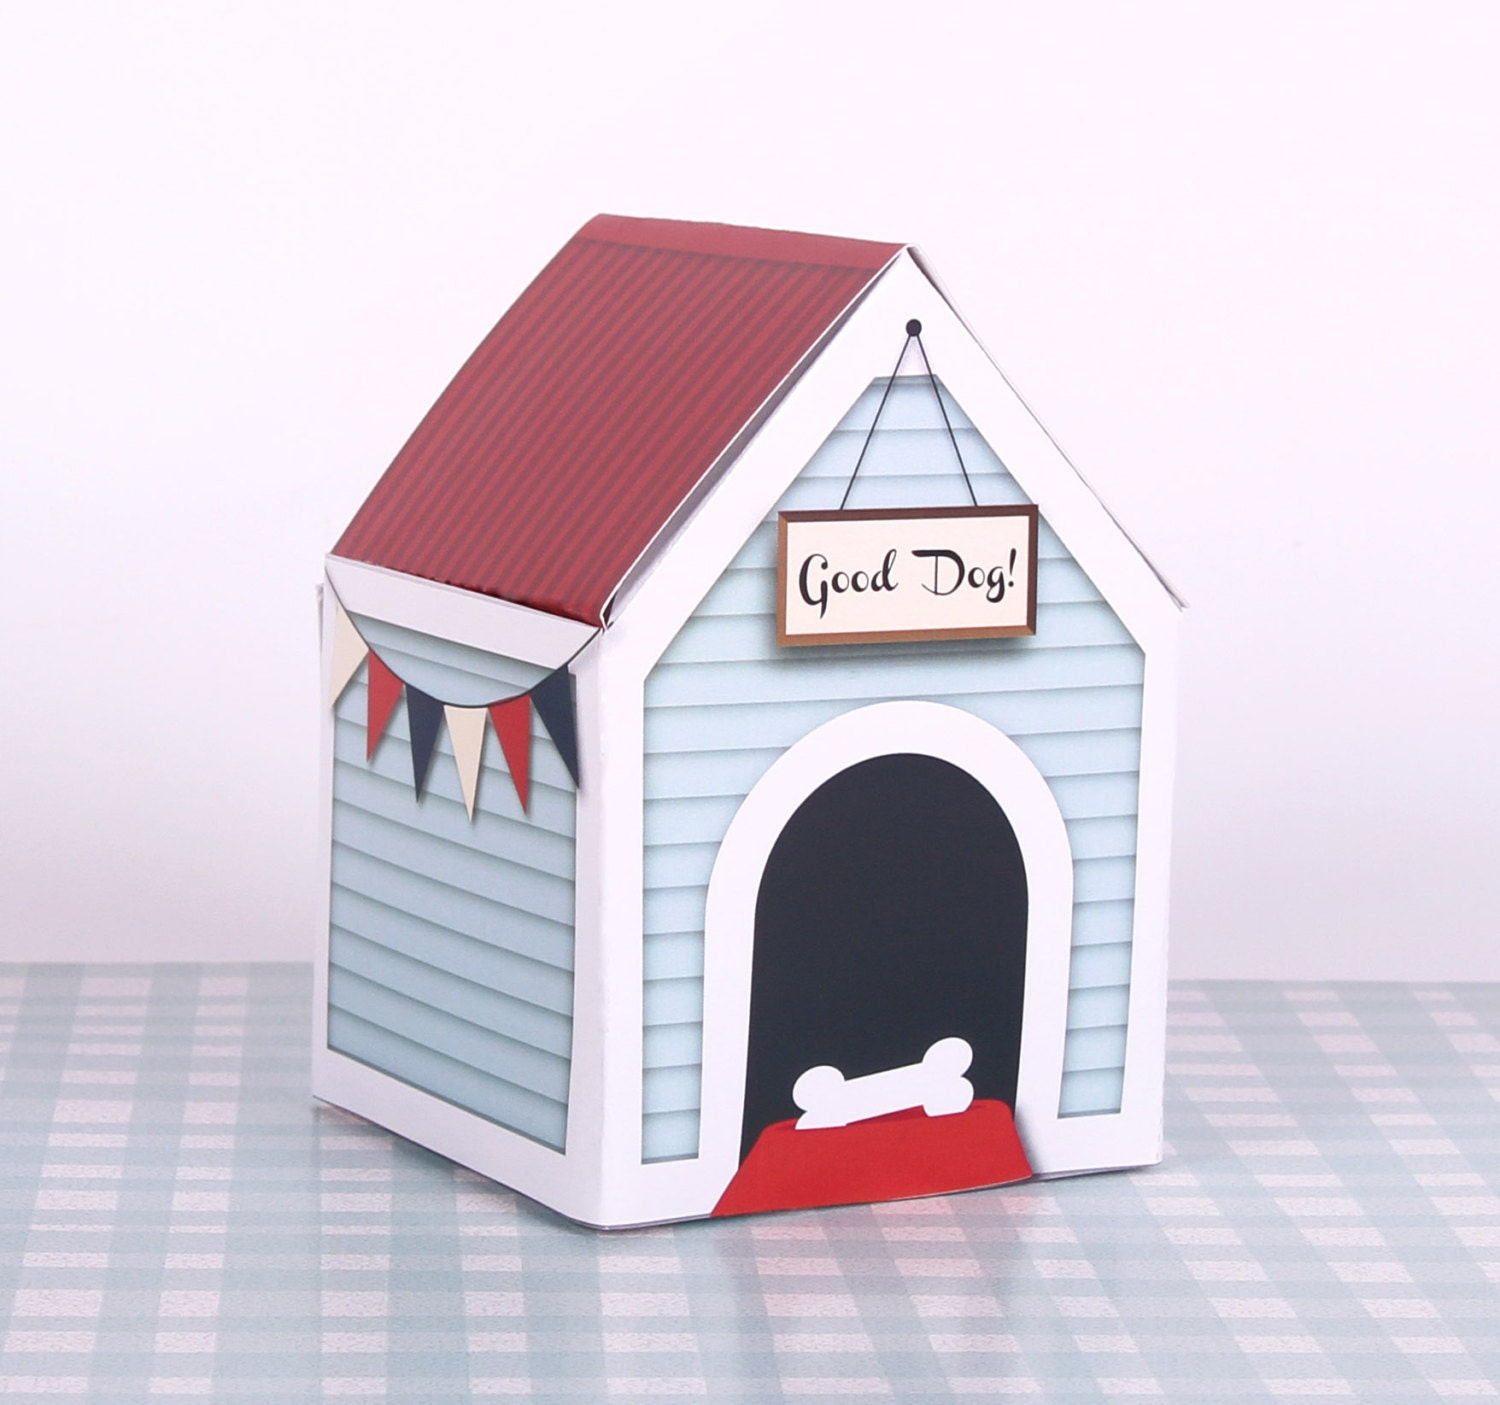 ... Wooden Kennel, Bunting, Dog Gift, Dog Food, Toy box, Good Dog, New